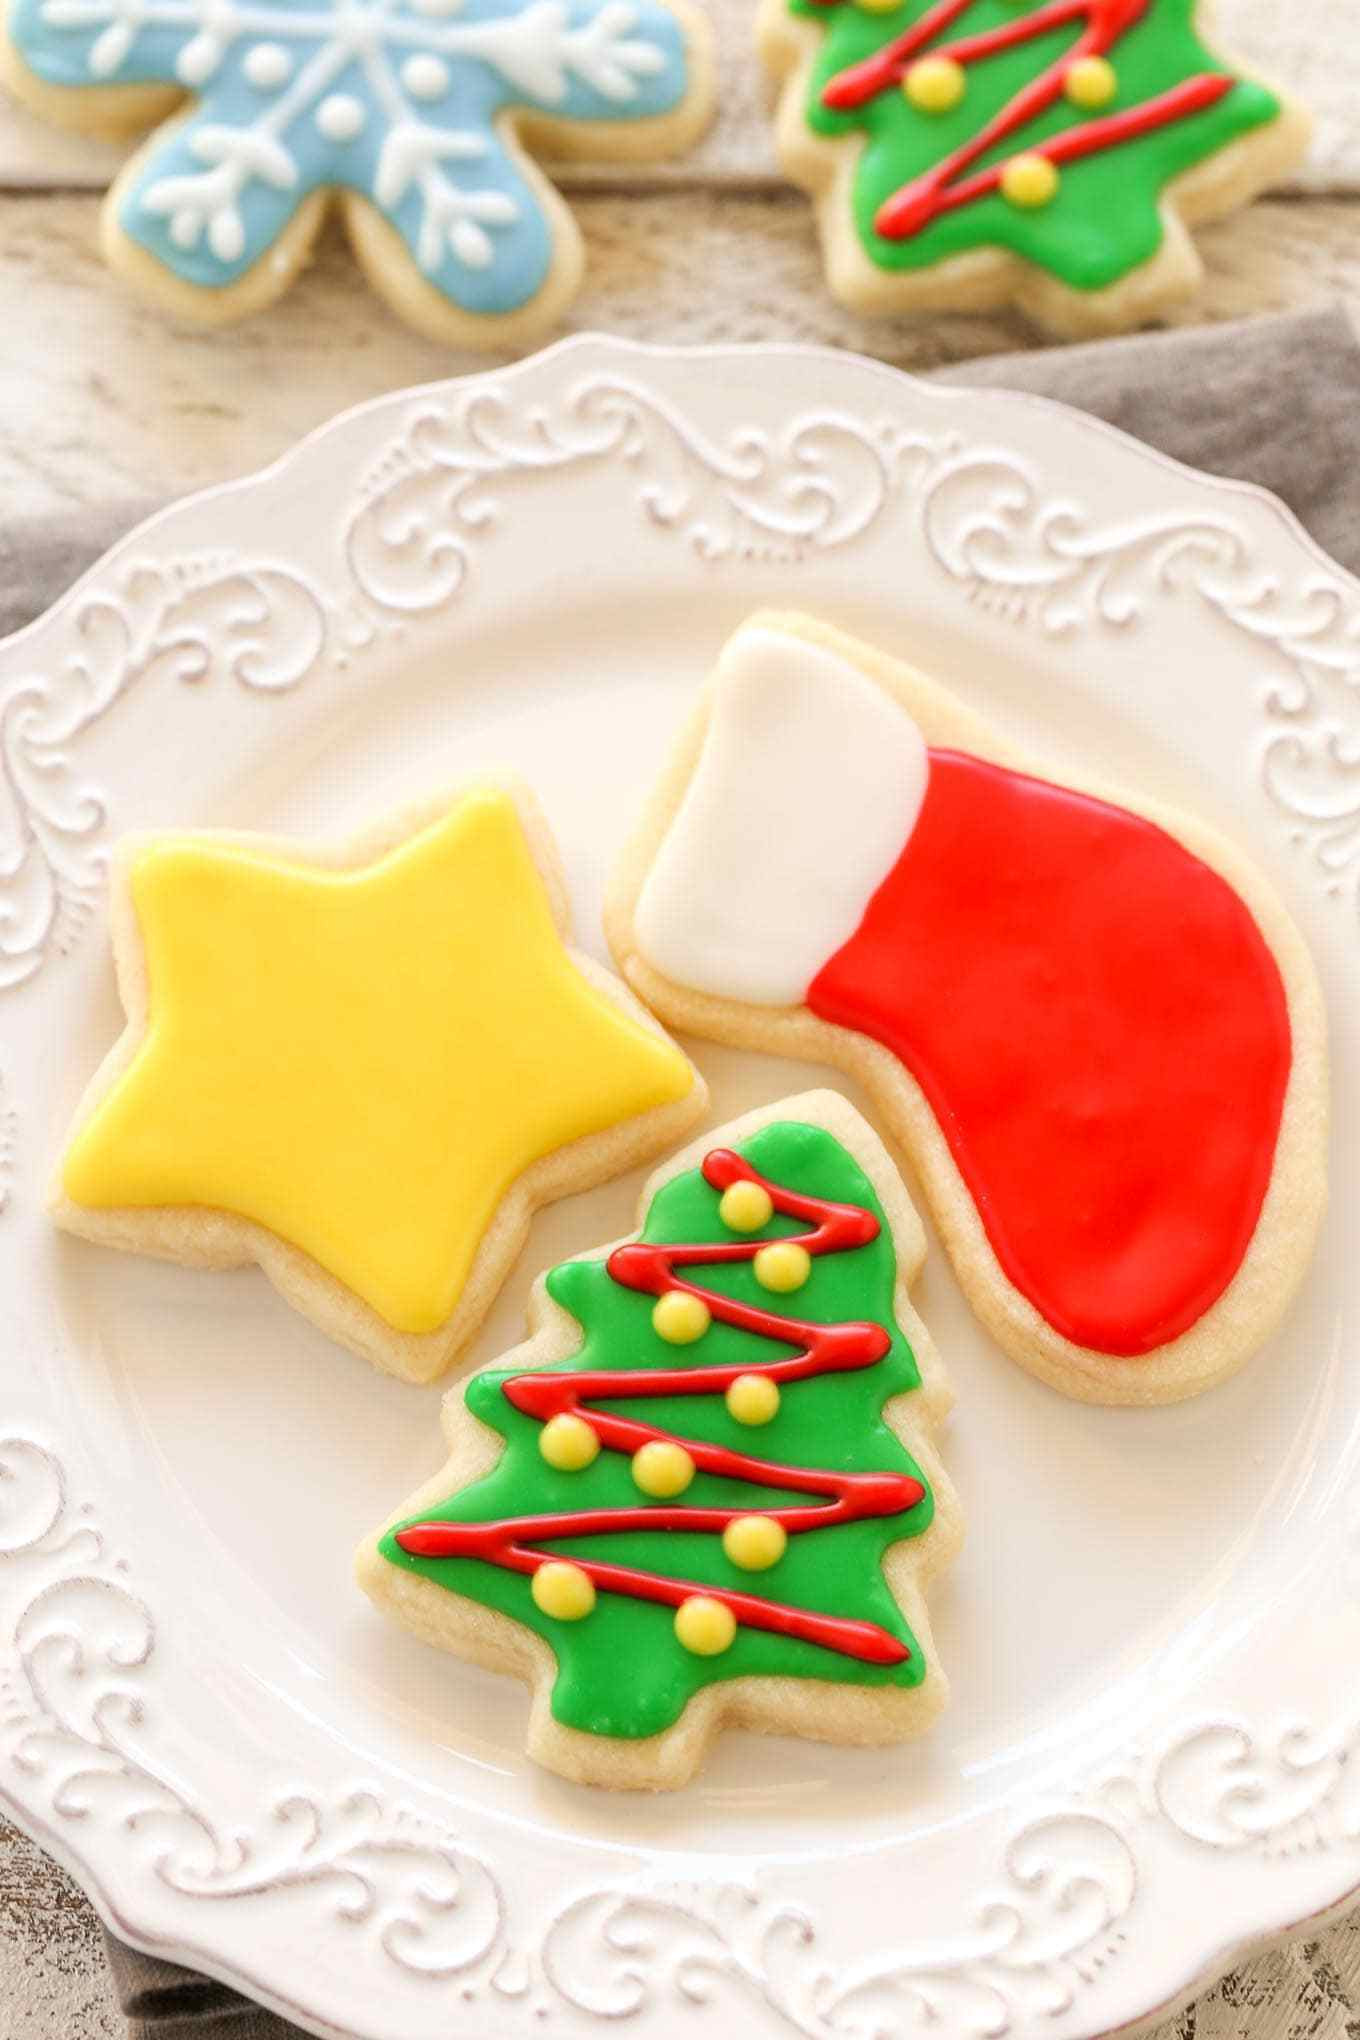 Easy Christmas Cut Out Cookies  Soft Christmas Cut Out Sugar Cookies Live Well Bake ten